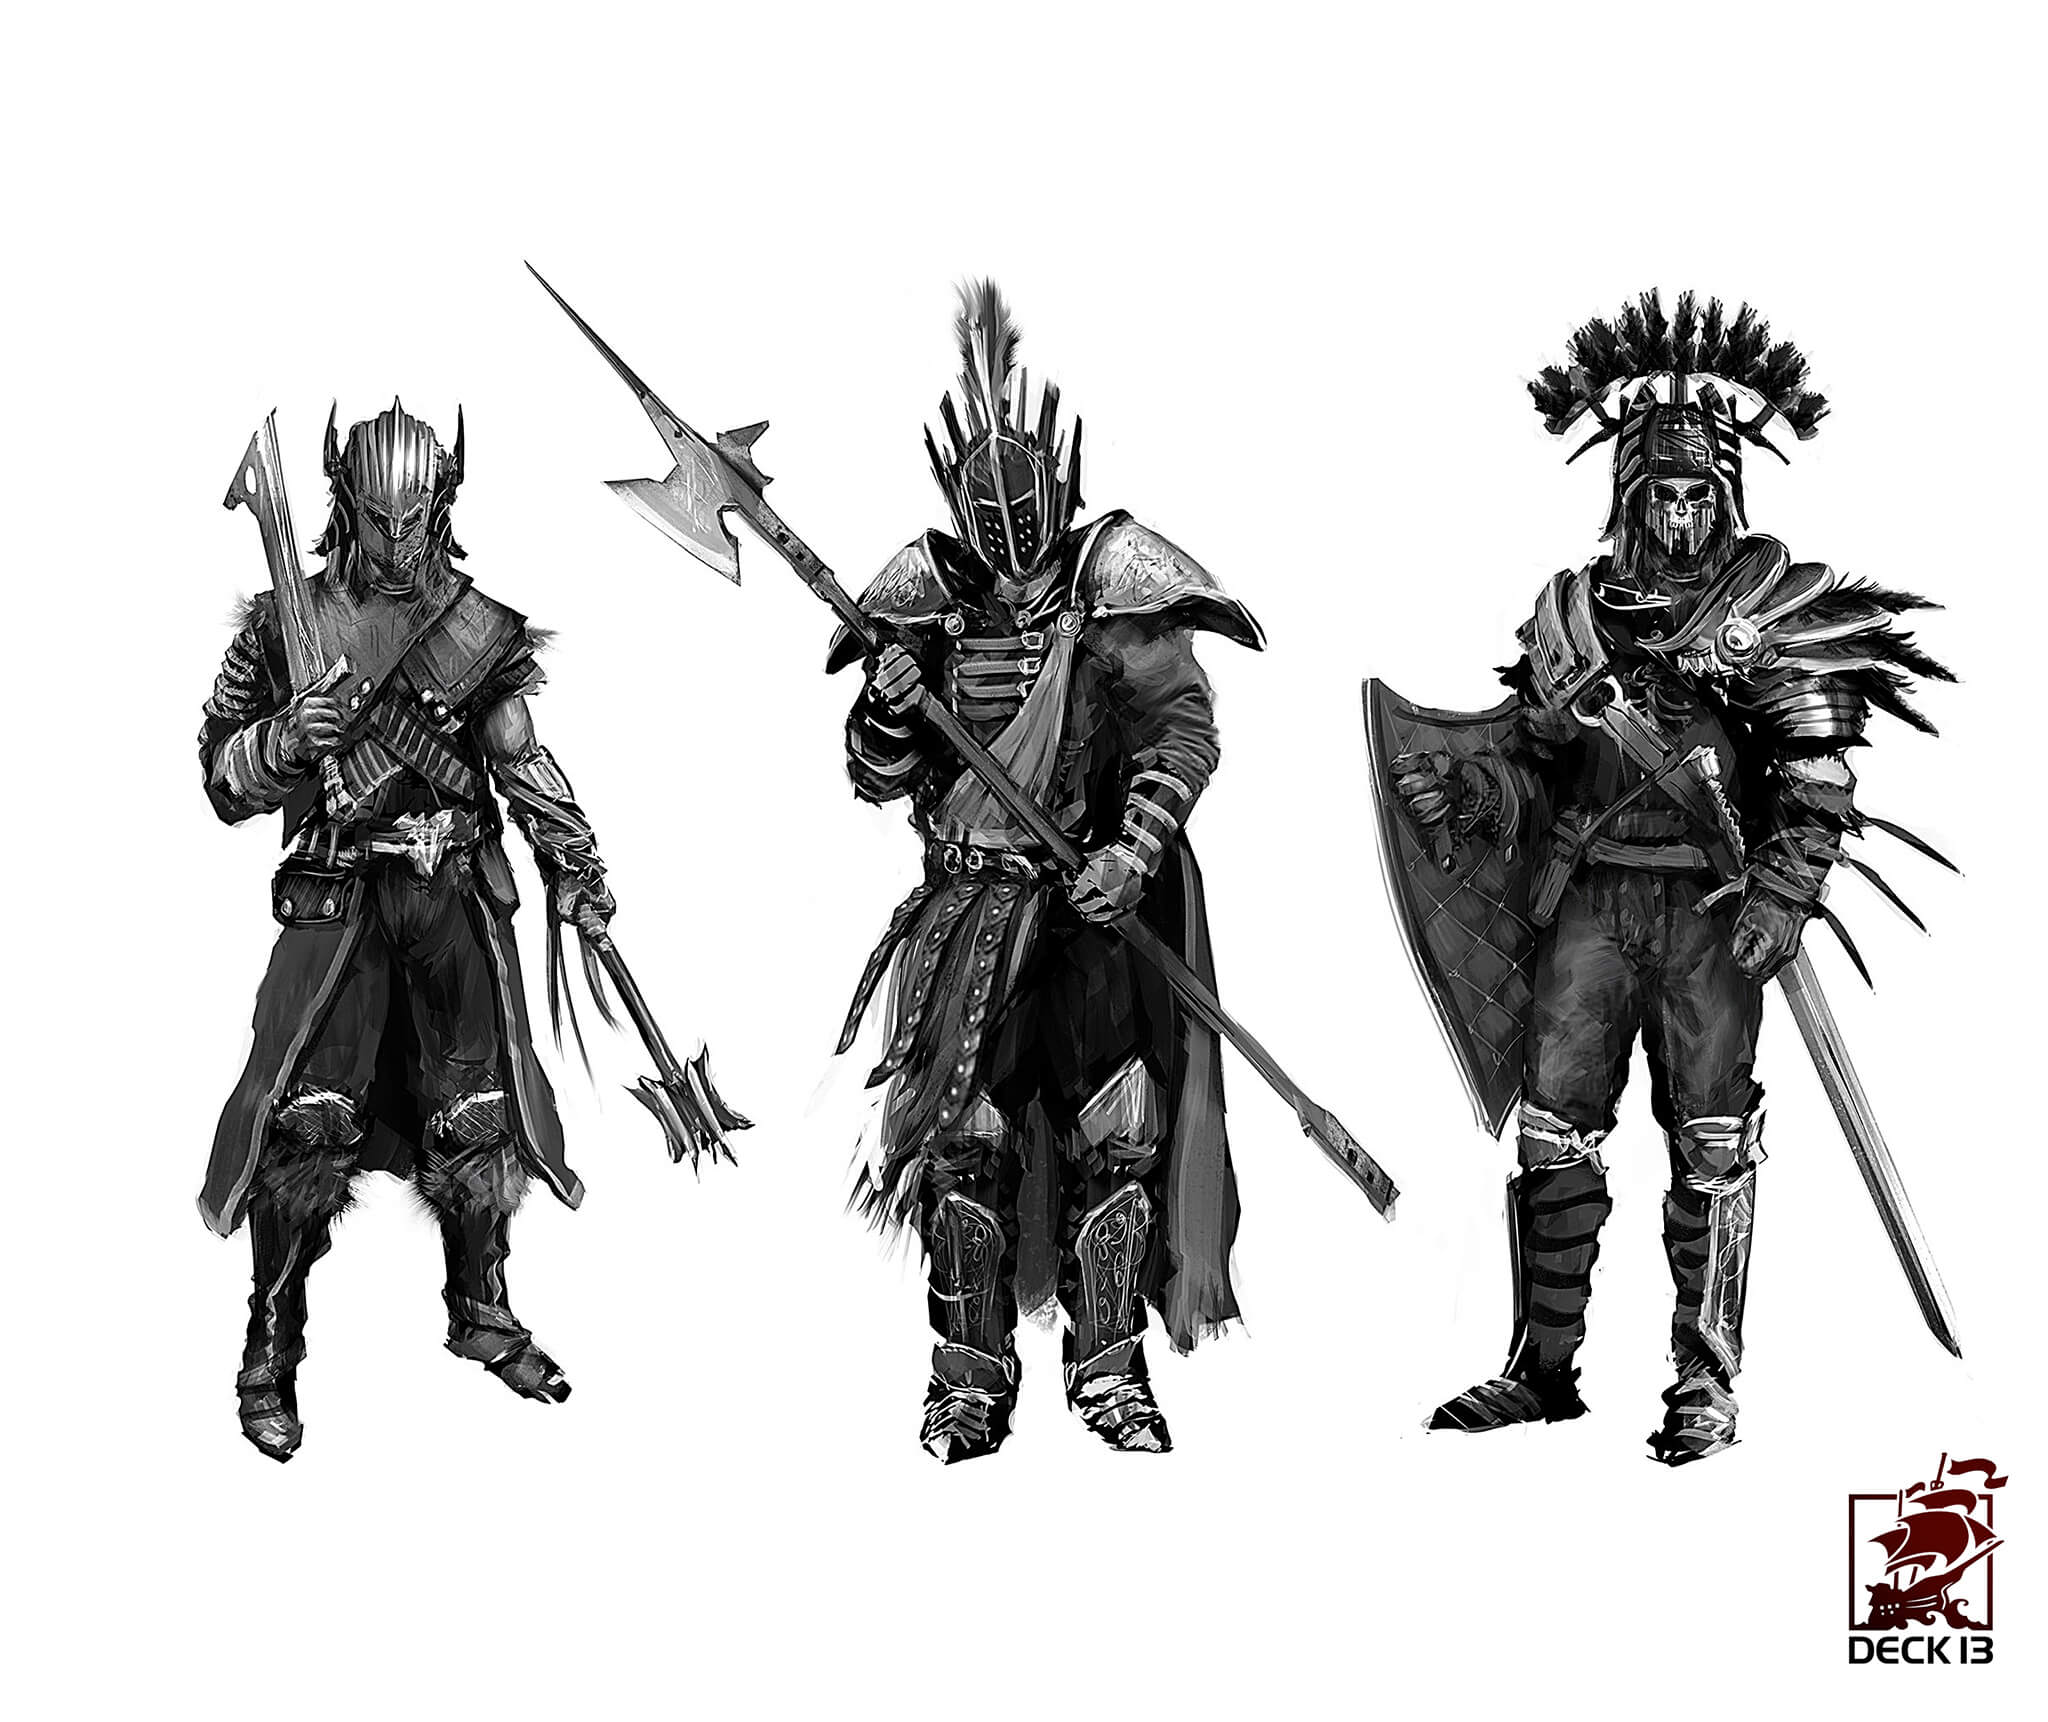 Dead-god-deck13-felix-botho-haas-concept-art-SC_class_warrior004